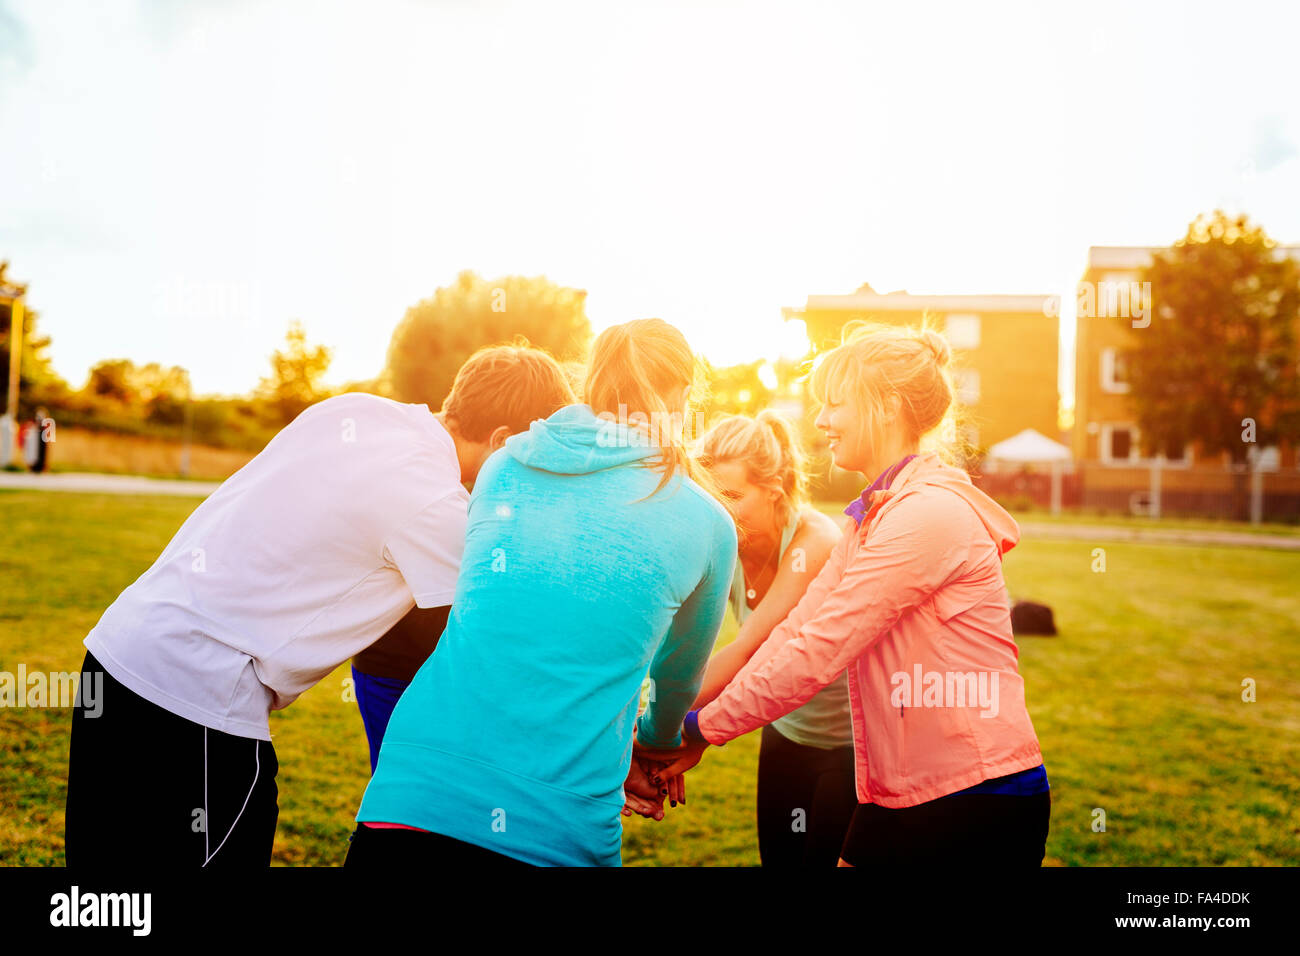 Sporty friends stacking hands in huddle at park during sunset - Stock Image